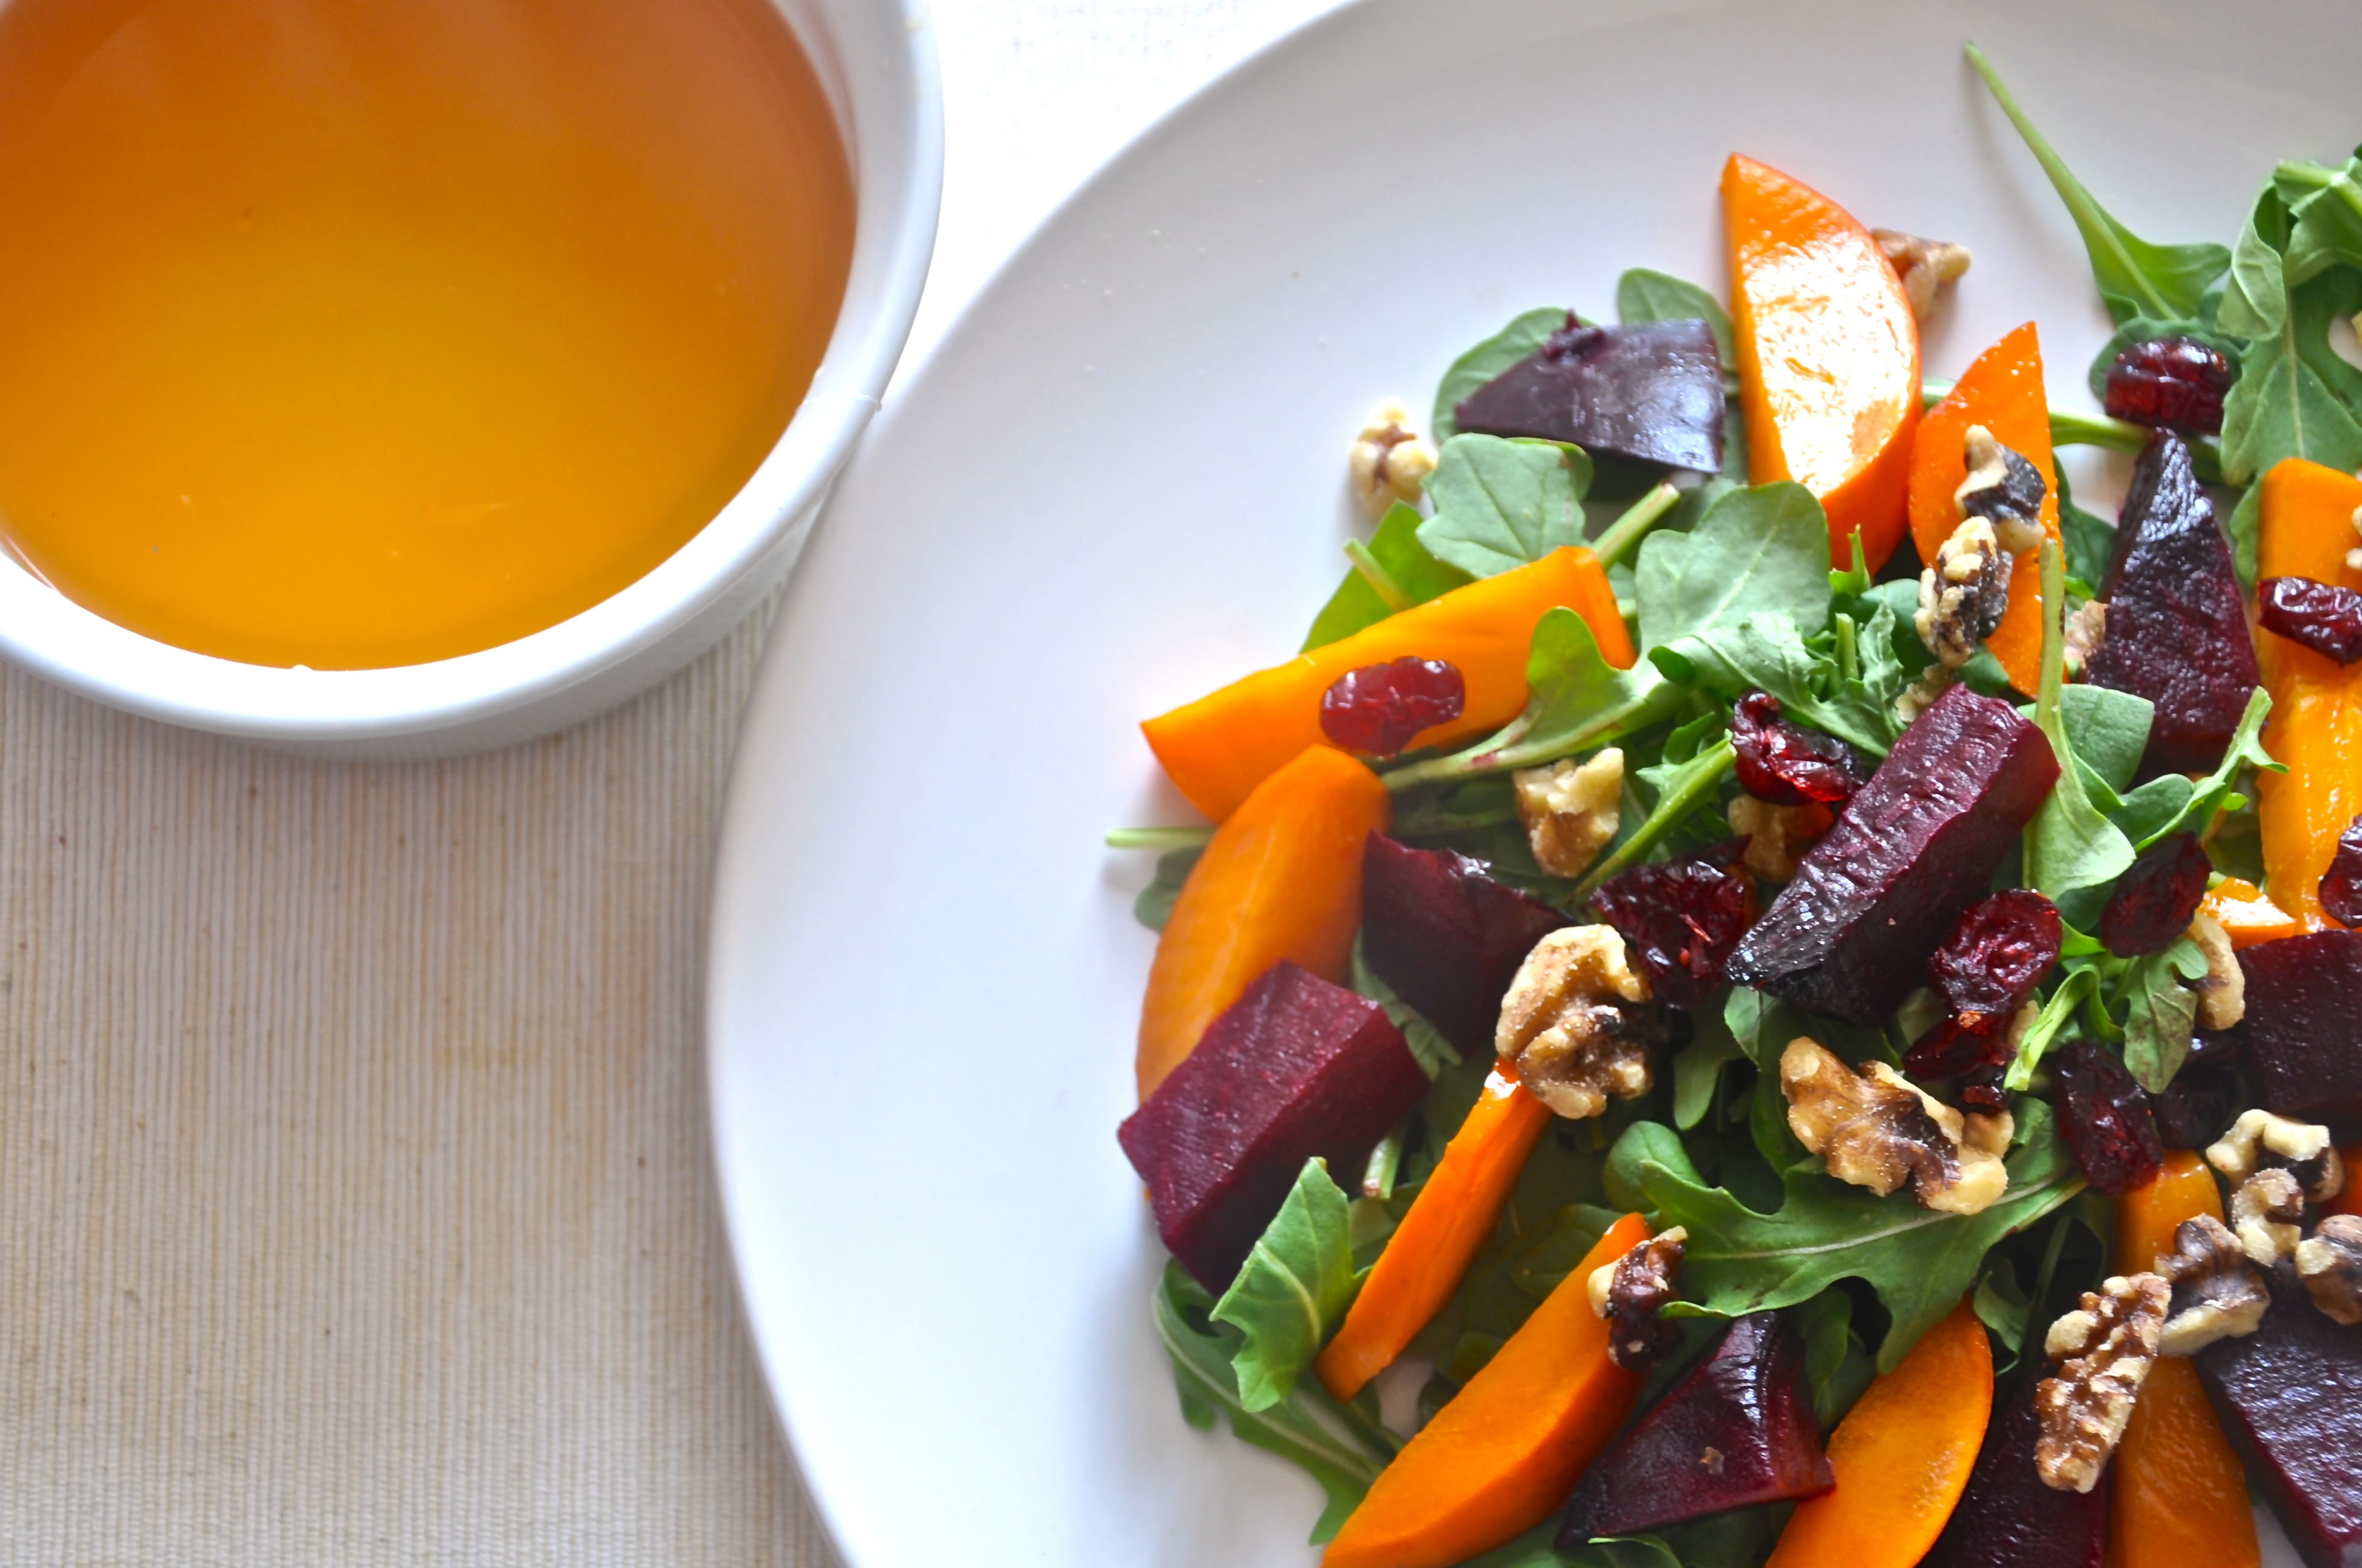 Persimmon and Roasted Beet Salad with Citrus-Honey Vinaigrette